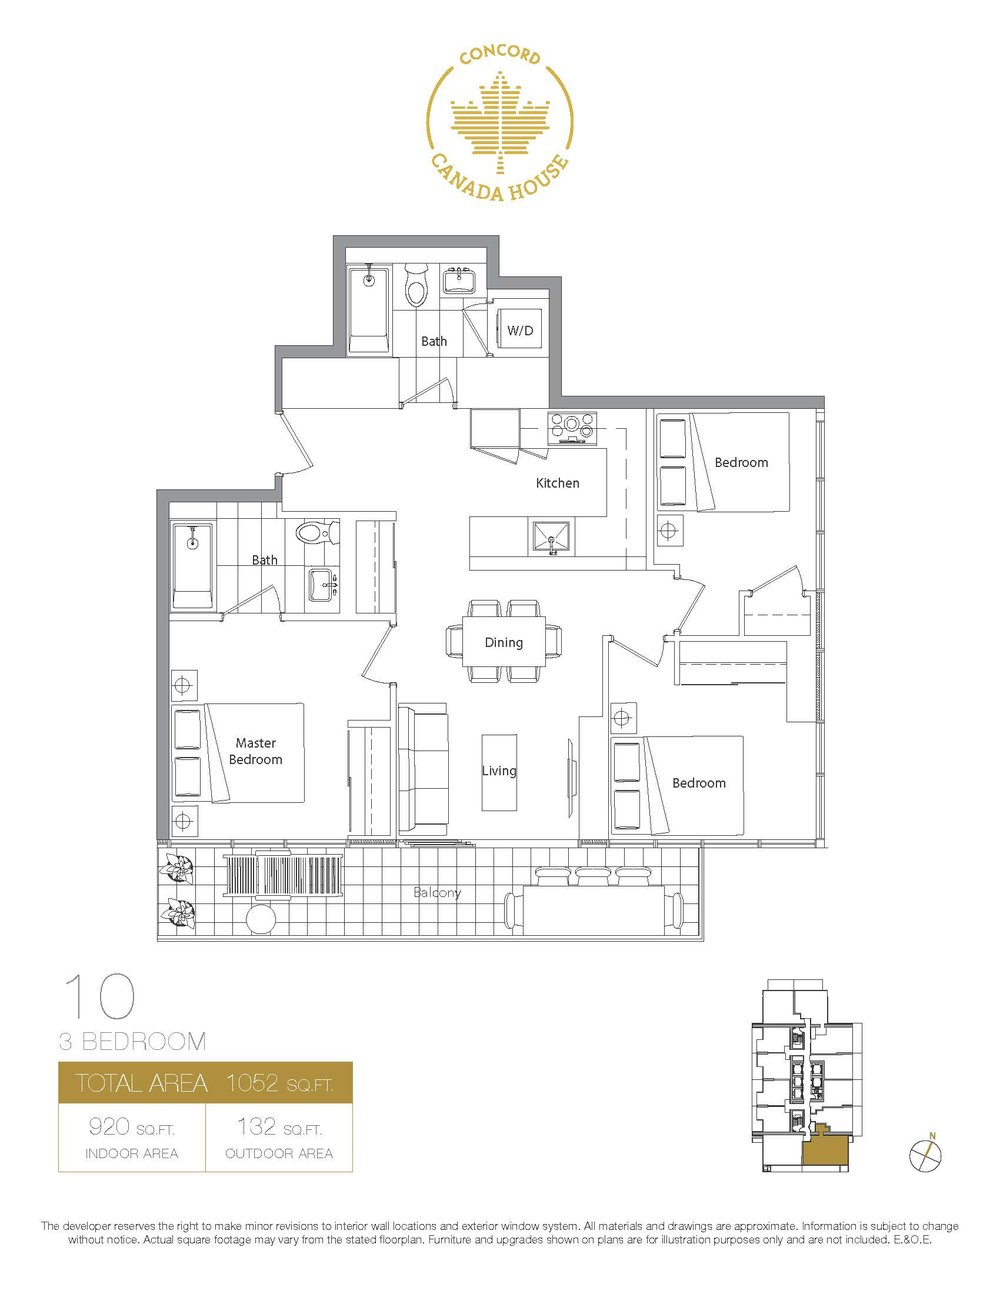 Blk22_B_Lower_Floorplans_LR_062817 9.jpg